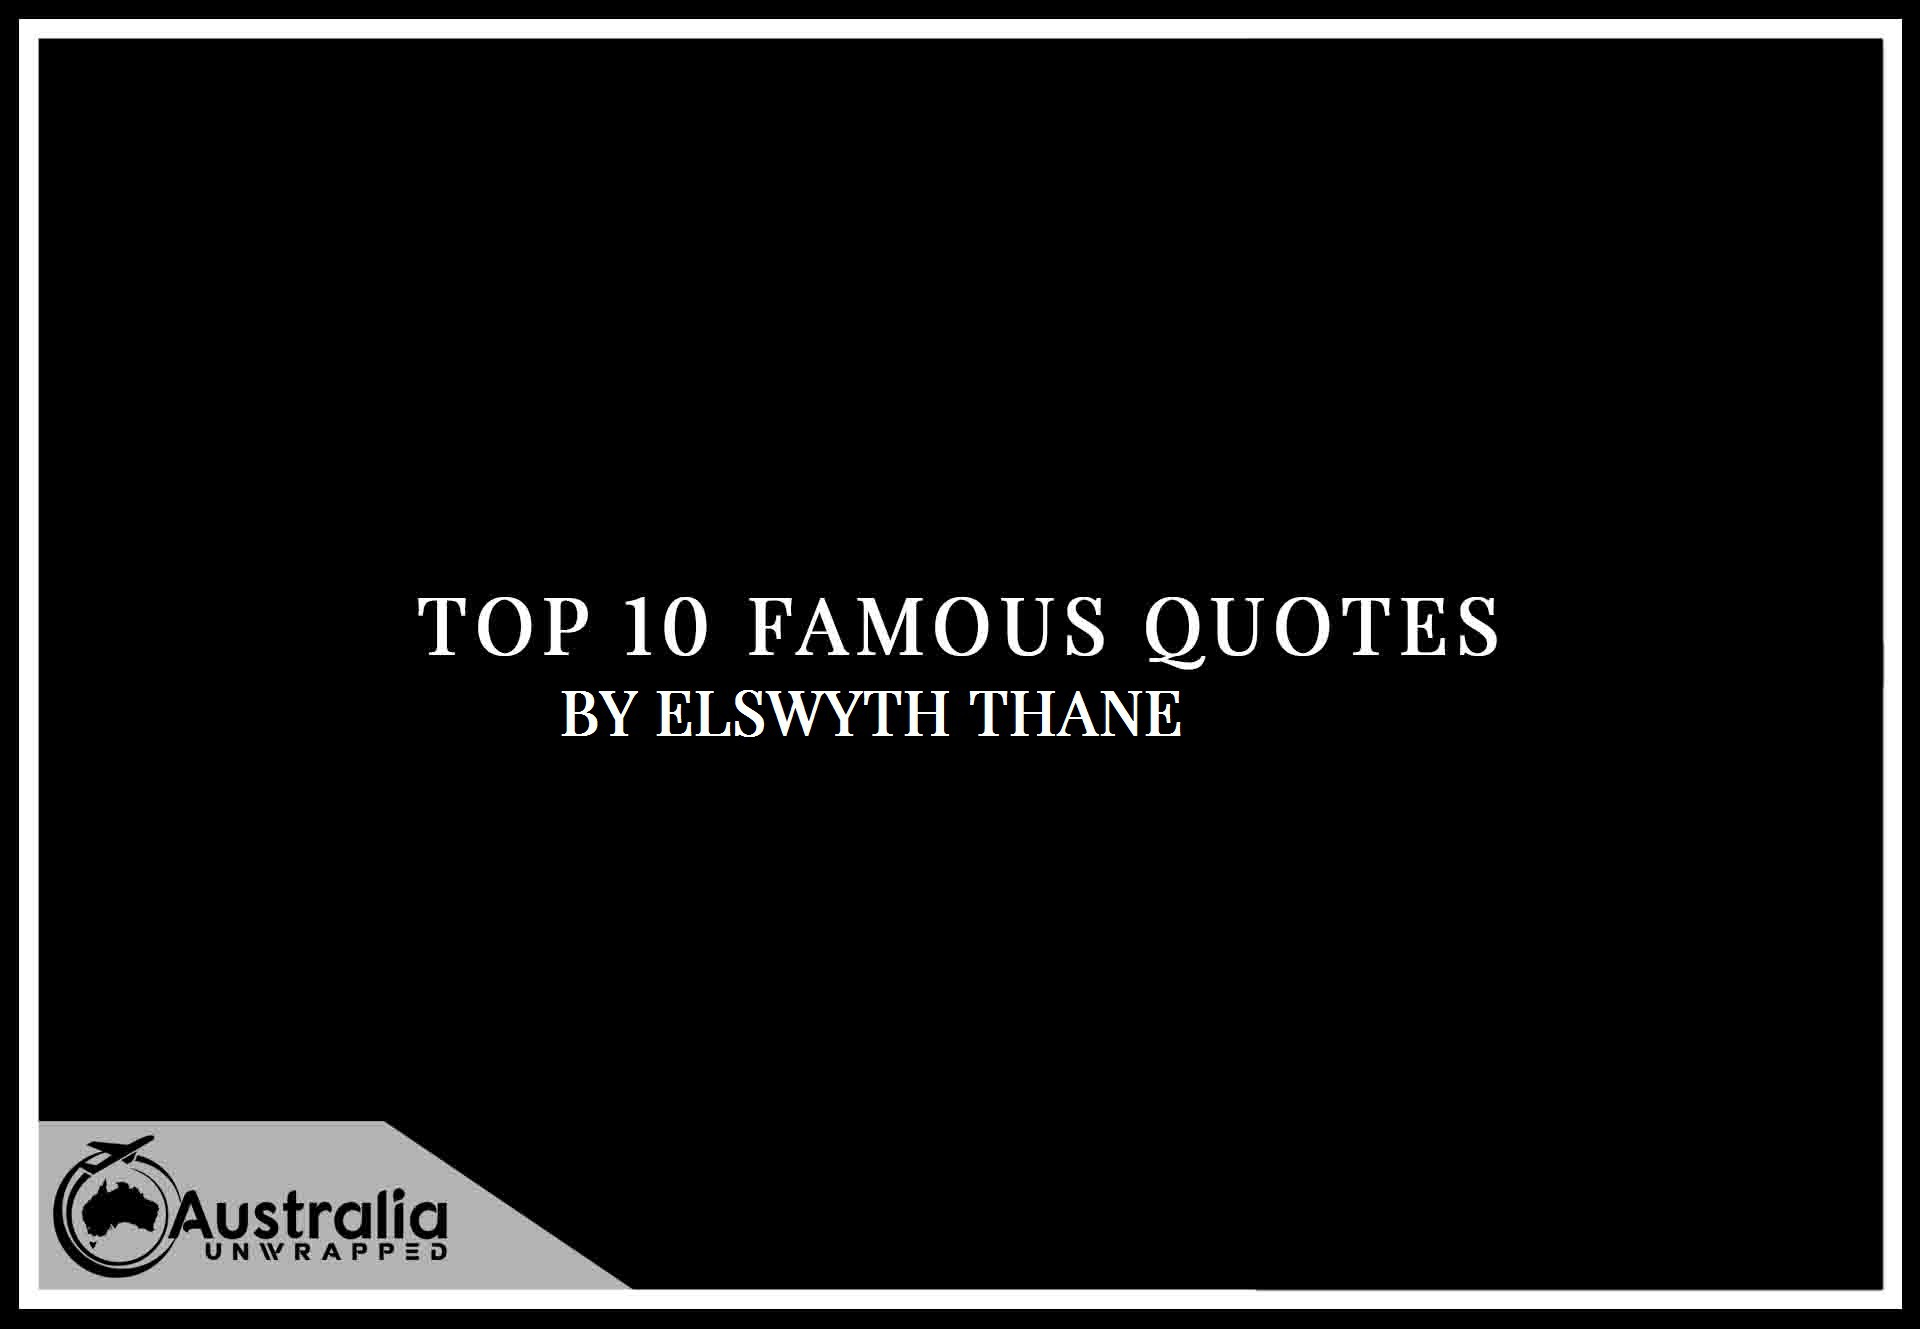 Elswyth Thane's Top 10 Popular and Famous Quotes